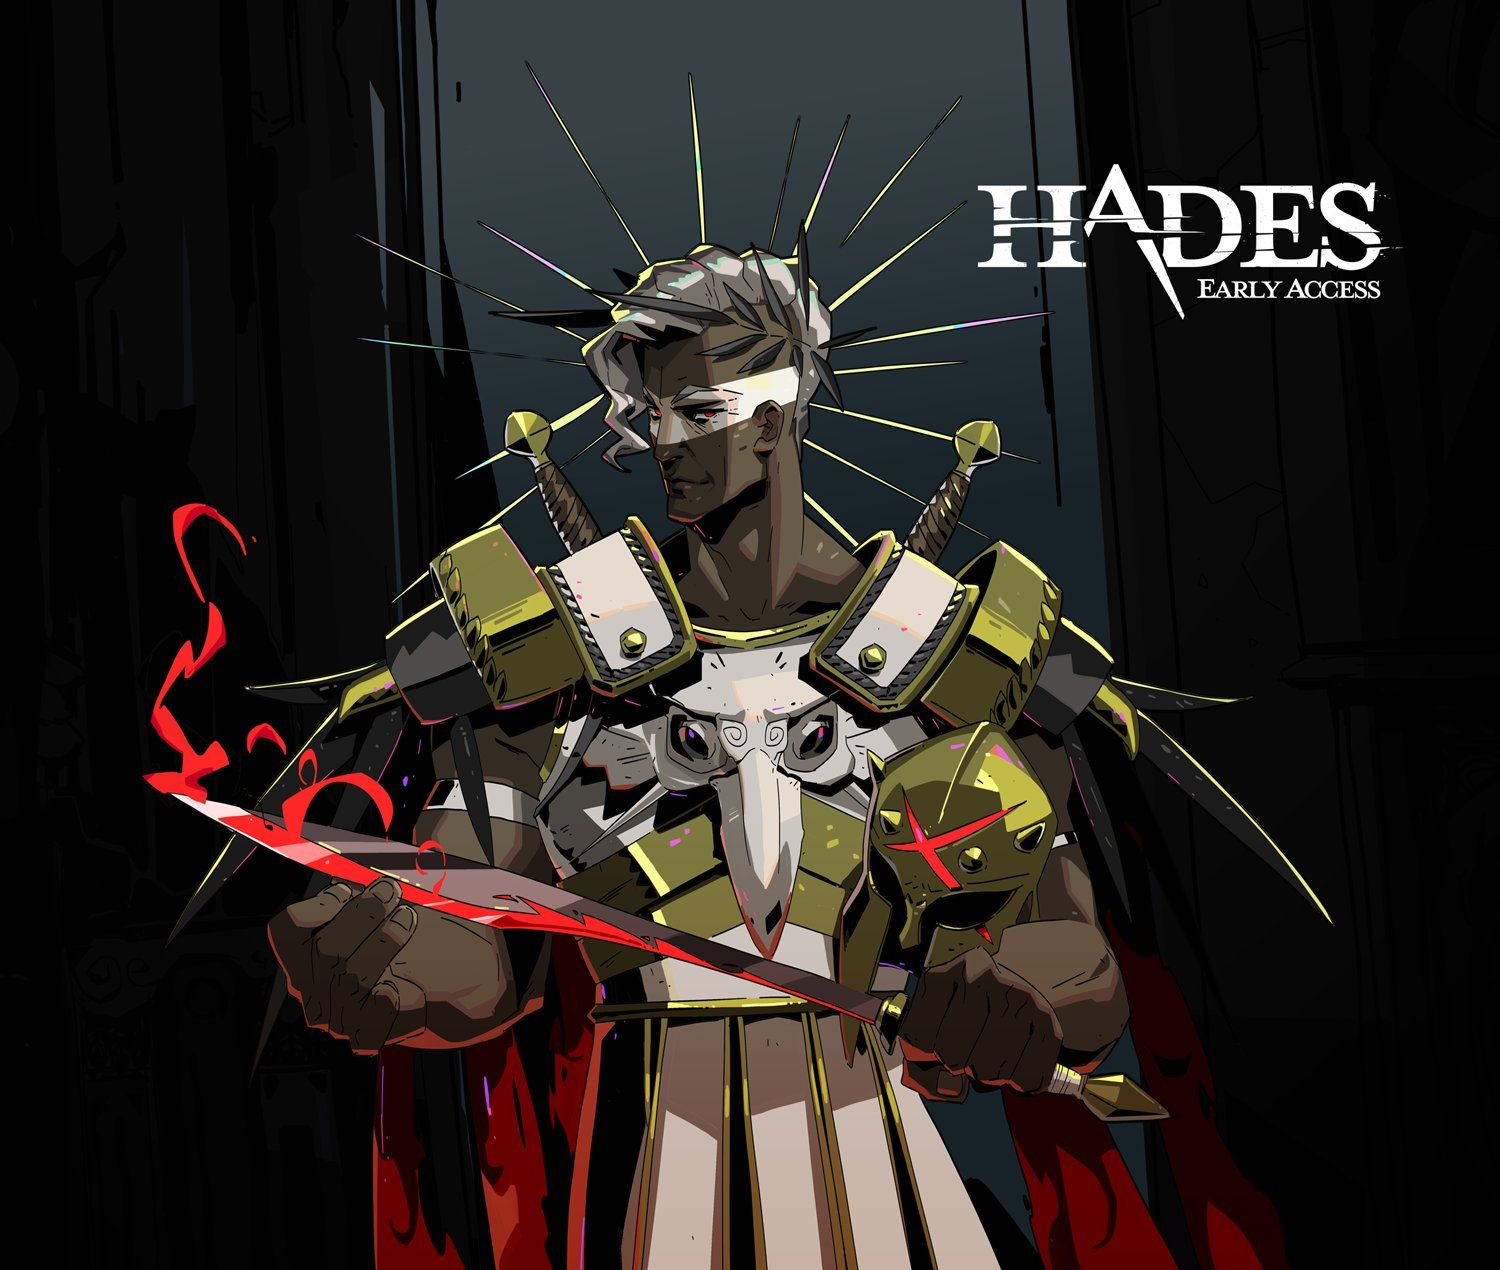 SupergiantGames #Hades #Ares | Knights | Game concept art